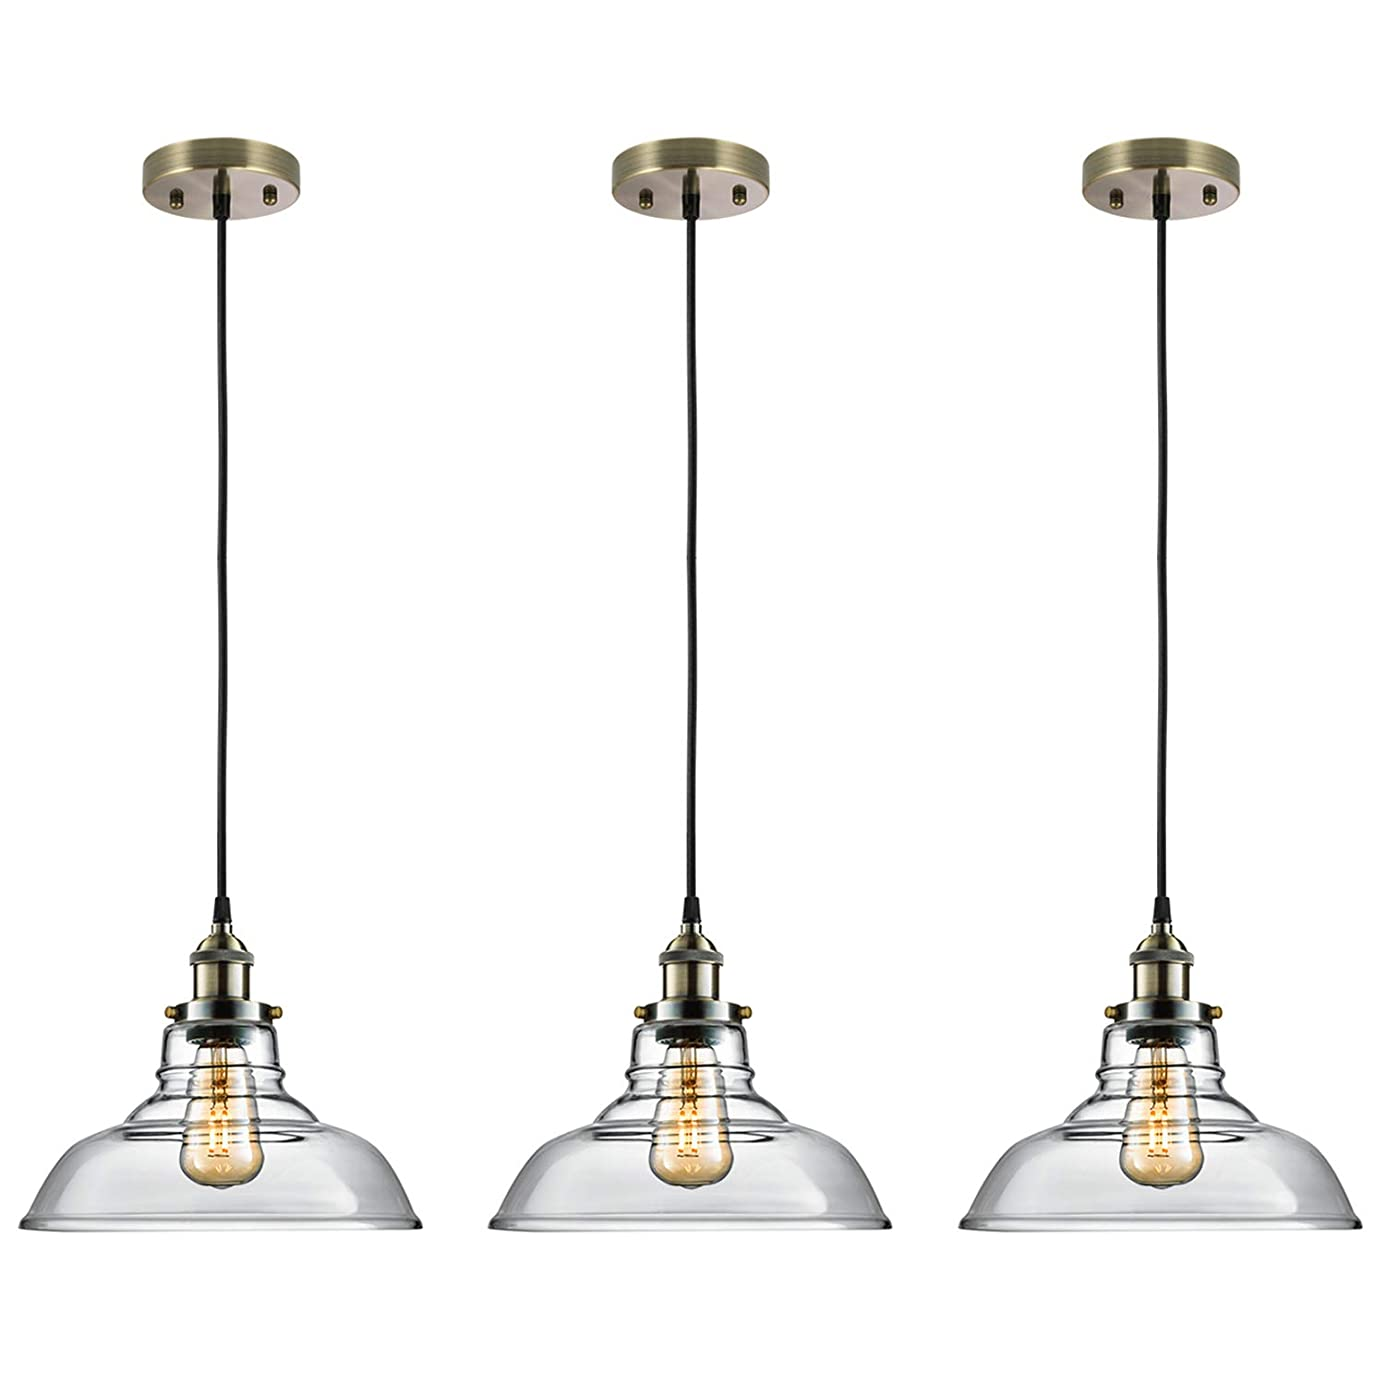 Salking Industrial Hanging Lamp, Vintage Edison Clear Glass Pendant Light, Adjustable Hanging Height(Fabric Cord), Antique Brass Brushed Antique Socket, Modern Vintage Farmhouse Kitchen Lamp, 3-Pack huczwi0110